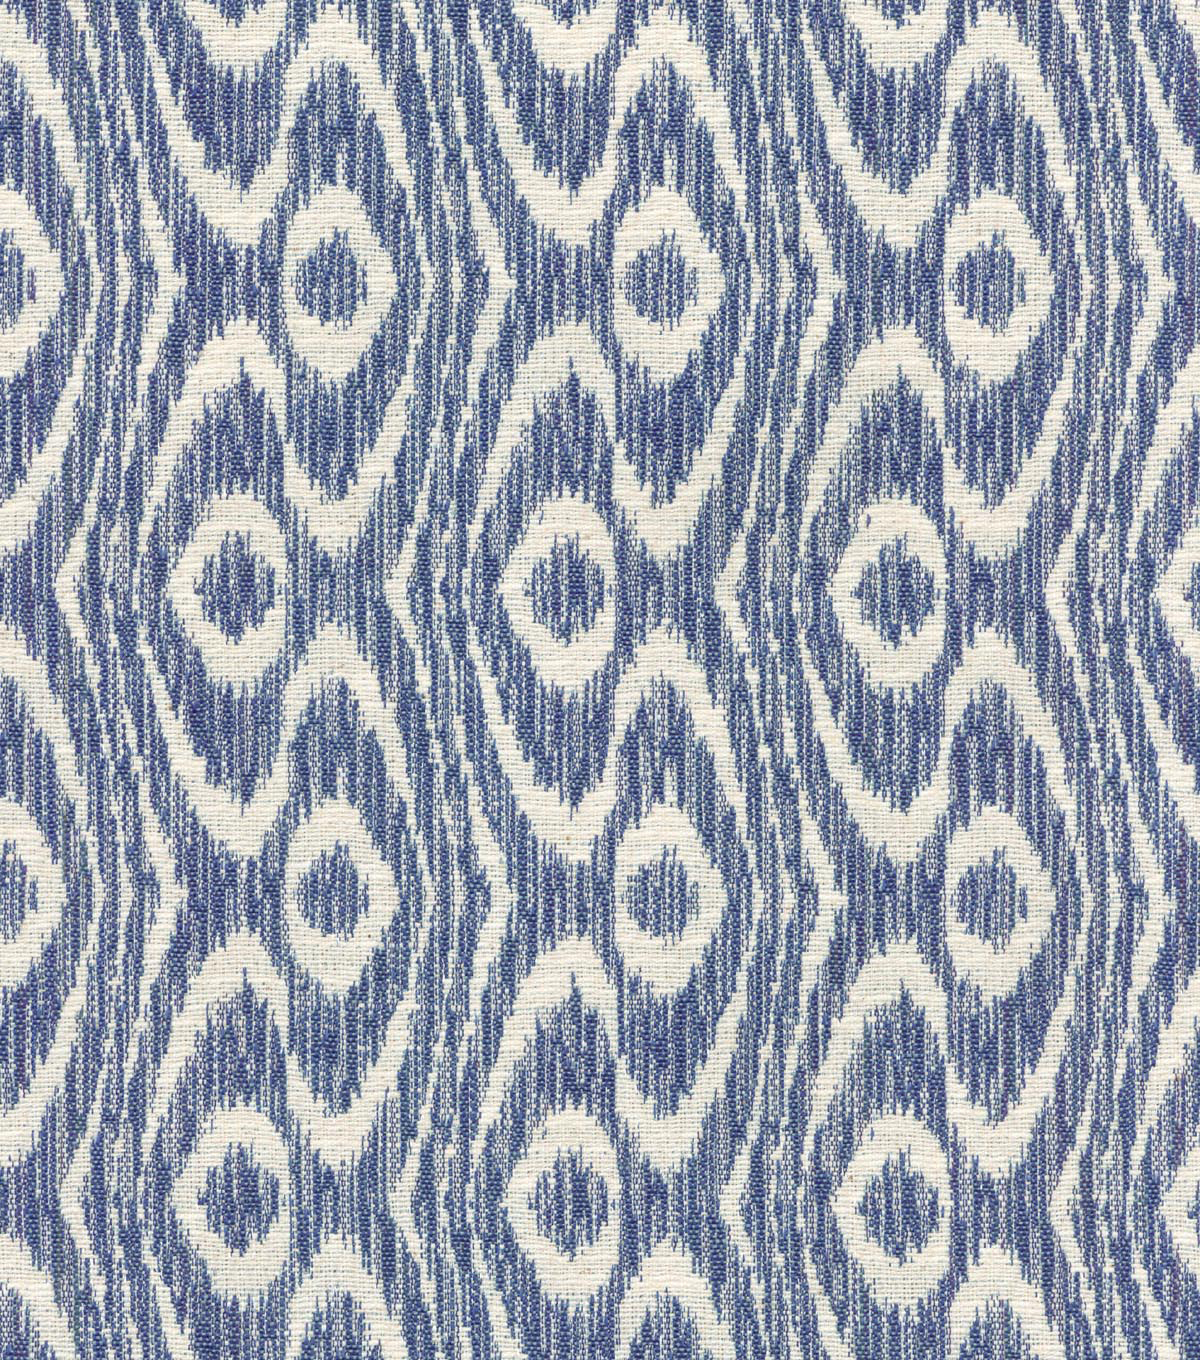 Home Decor 8\u0022x8\u0022 Swatch Fabric-Tracy Porter Acres Beyond Sapphire